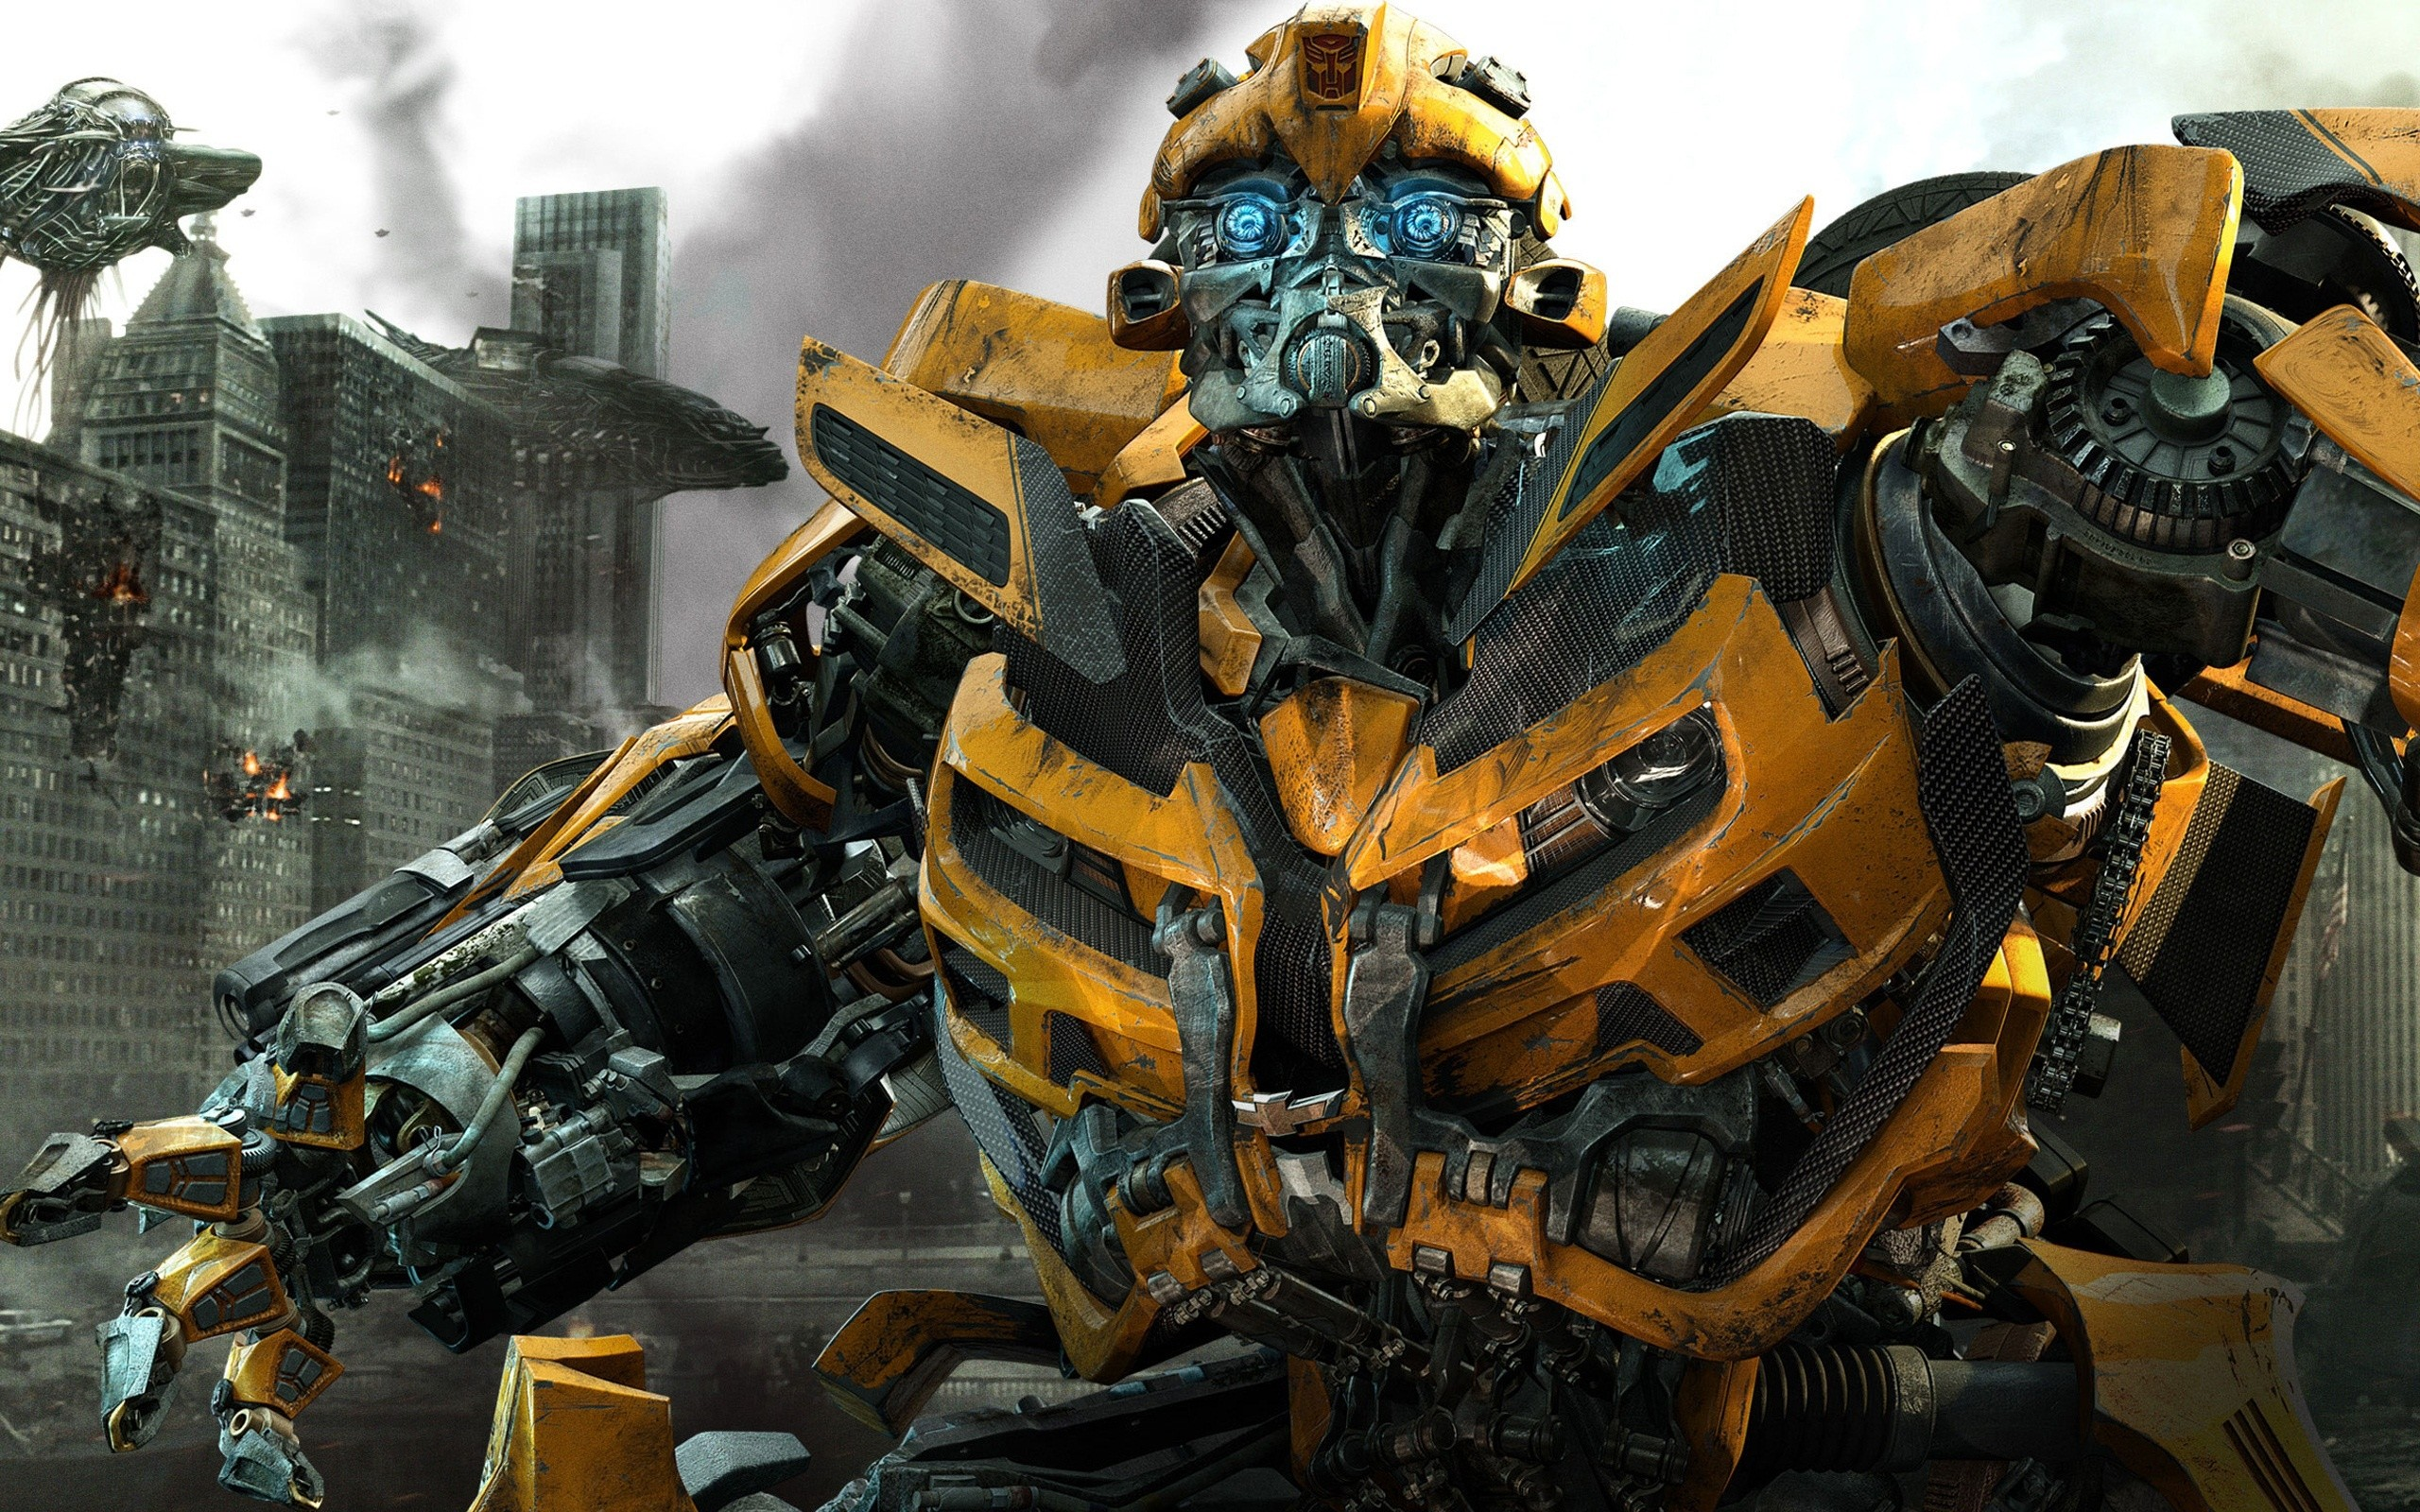 2560x1600 Bumblebee in Transformers 3